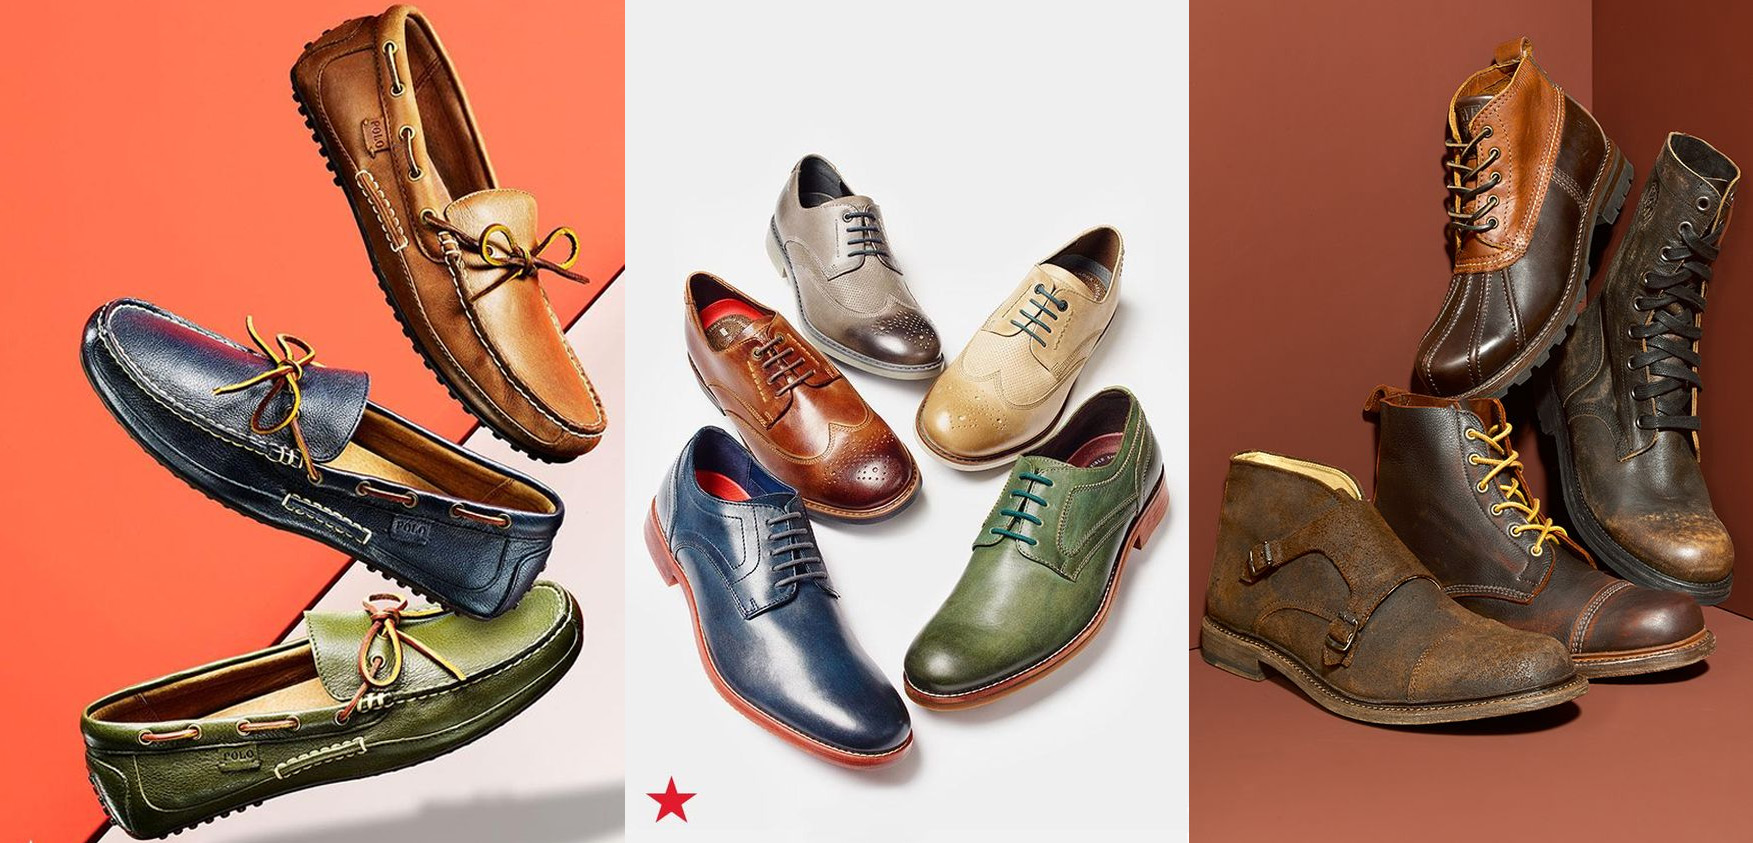 c8bd74cc779 Macy's Men's Clearance Shoe Sale offers up to 70% off Cole Haan, UGG ...